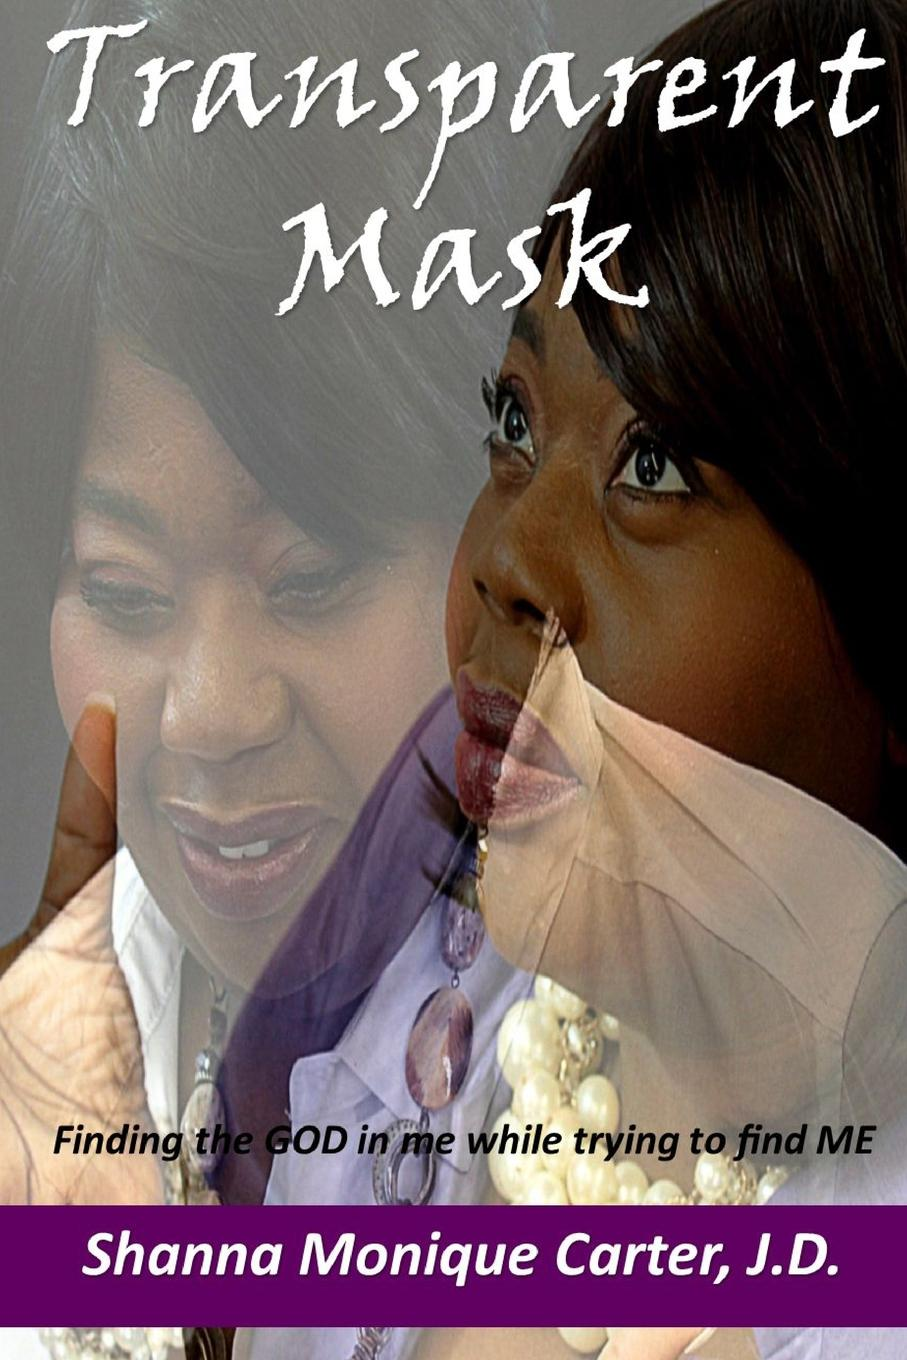 J.D. Shanna Carter Transparent Mask Finding the GOD in me while trying to find ME nina rae springfields the power of hope